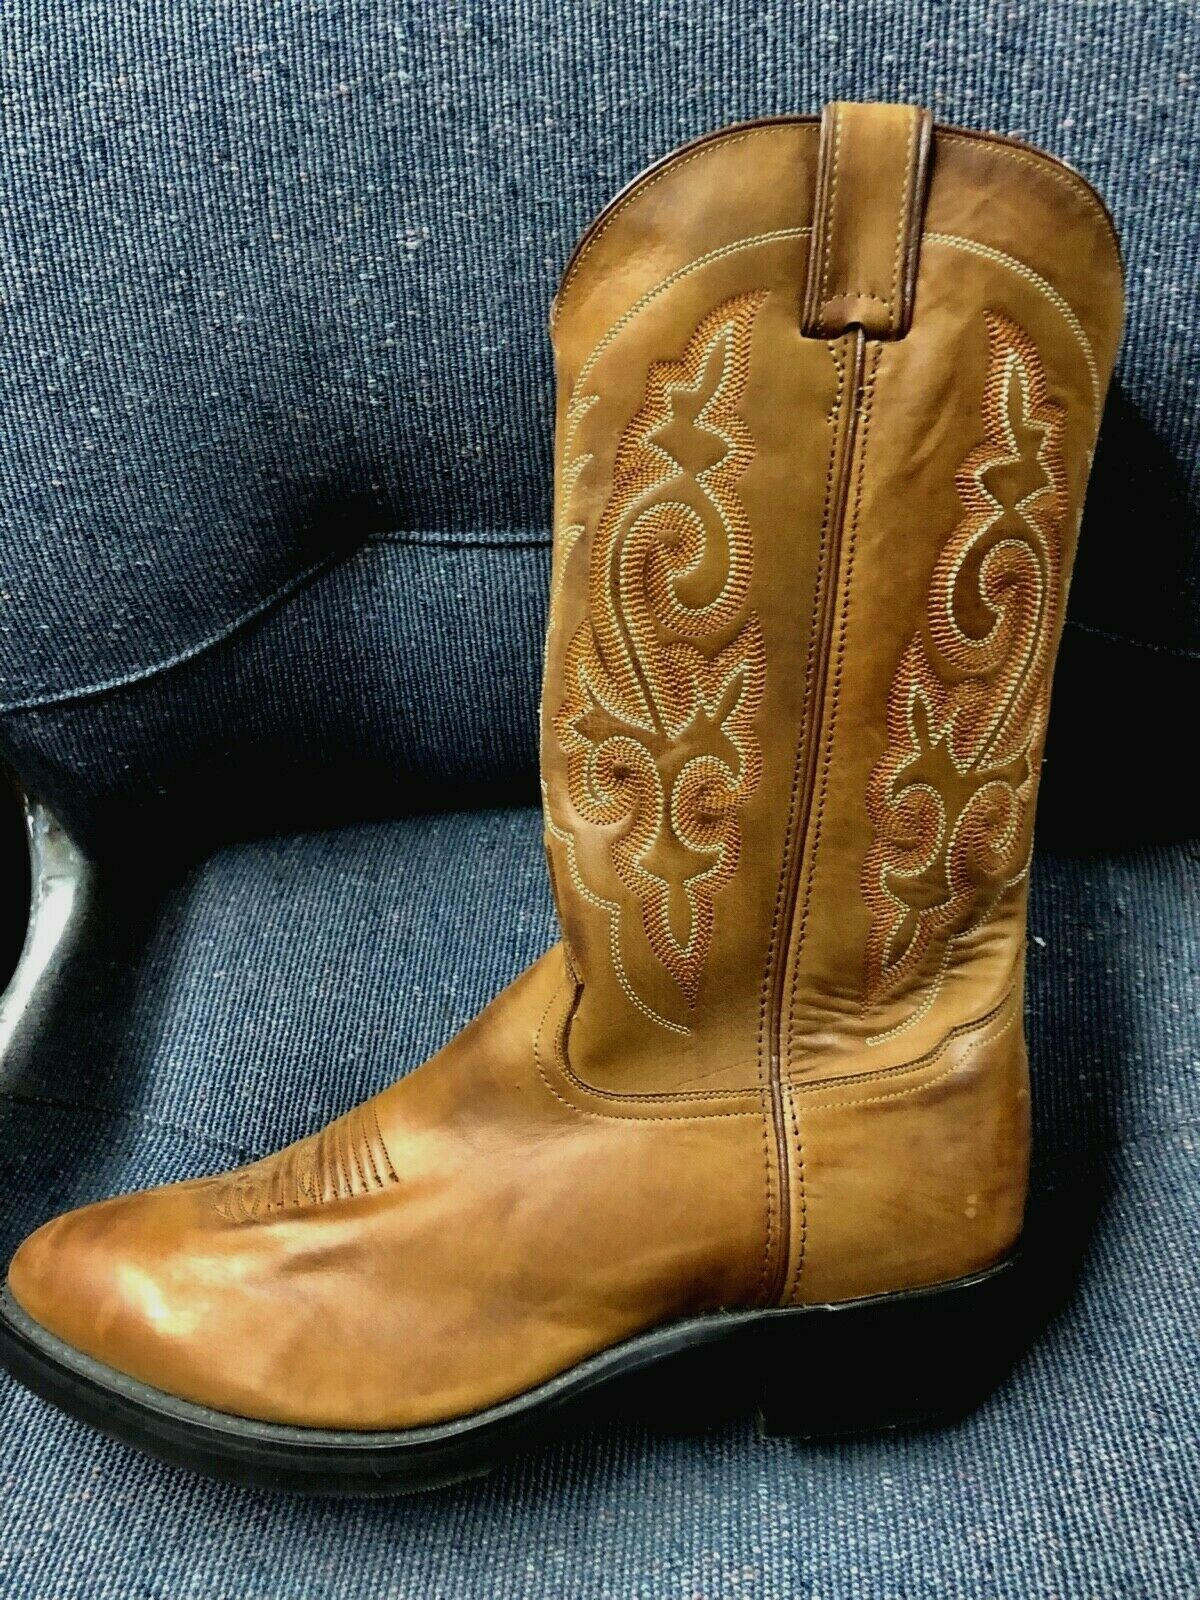 Double H Men's Cowboy Riding Equestrian Western Work Brown  Boots 12 EE New